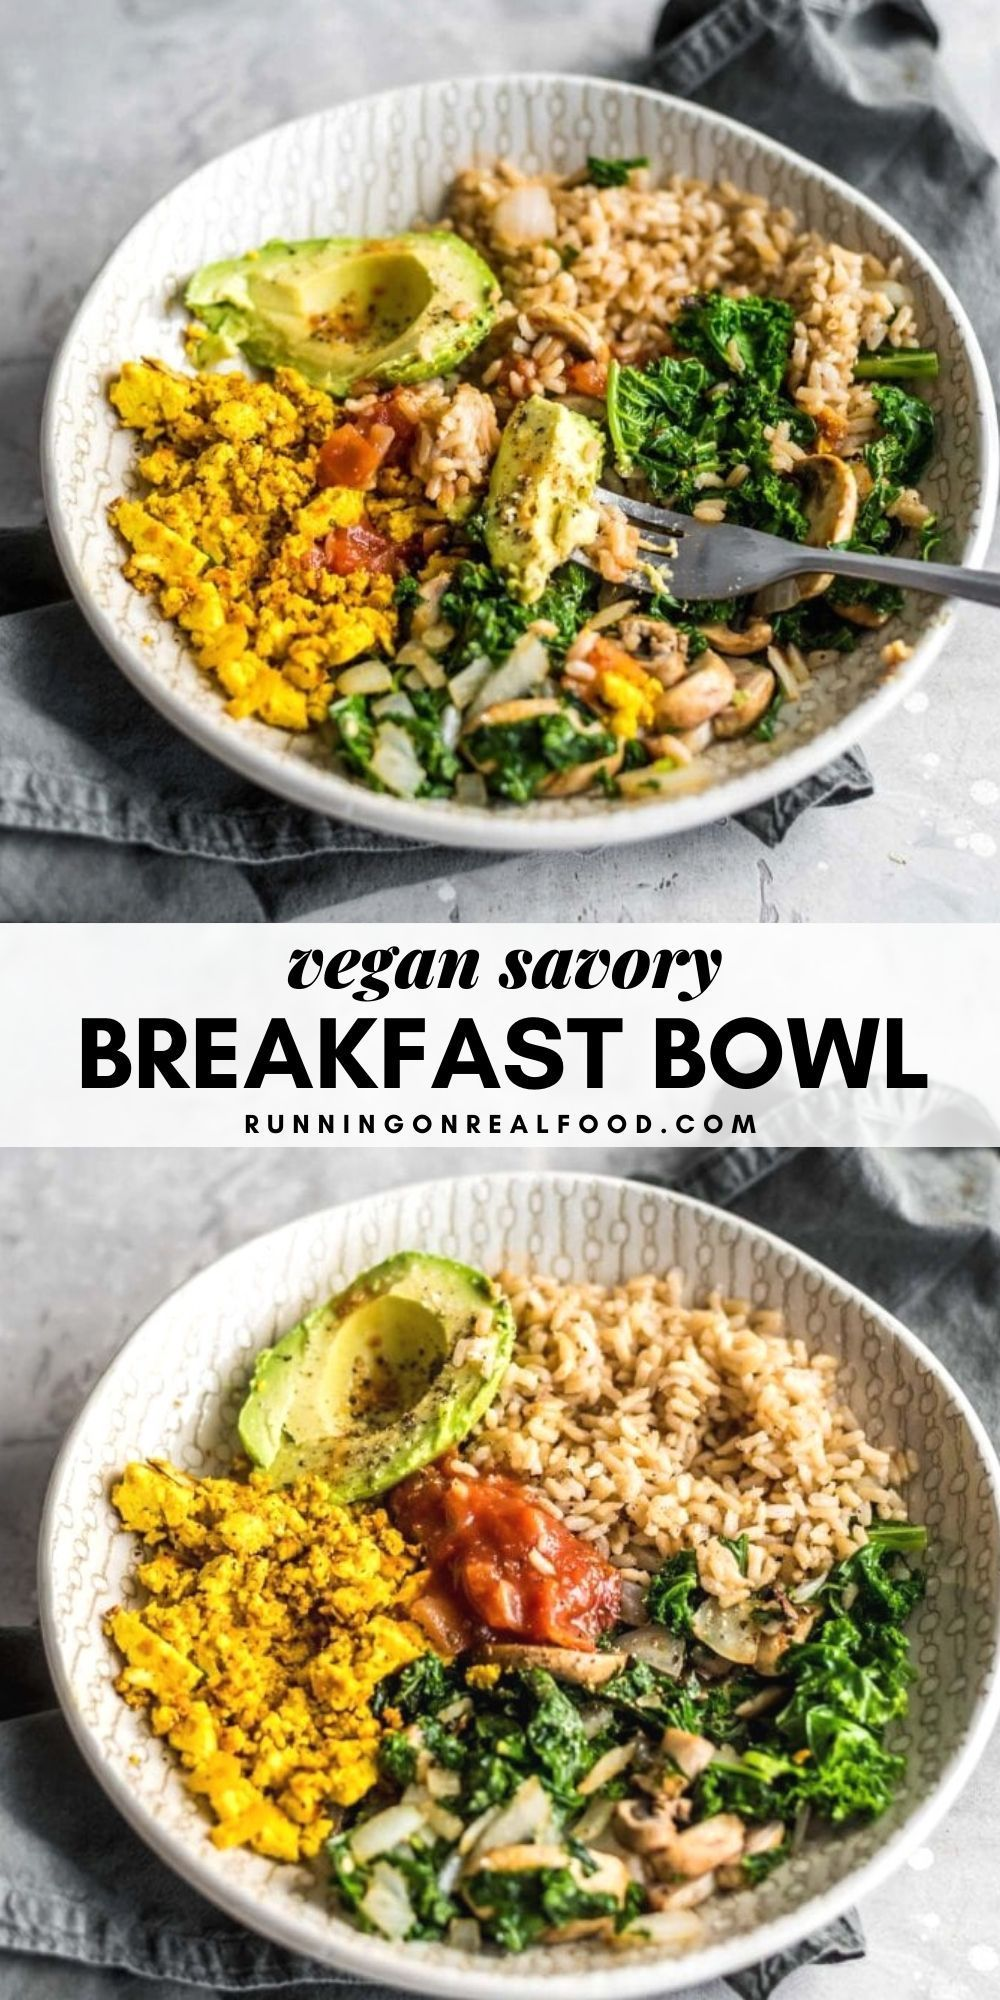 Savory Vegan Breakfast Bowl Recipe In 2020 Breakfast Bowls Recipe Healthy Breakfast Bowls Plant Based Recipes Breakfast